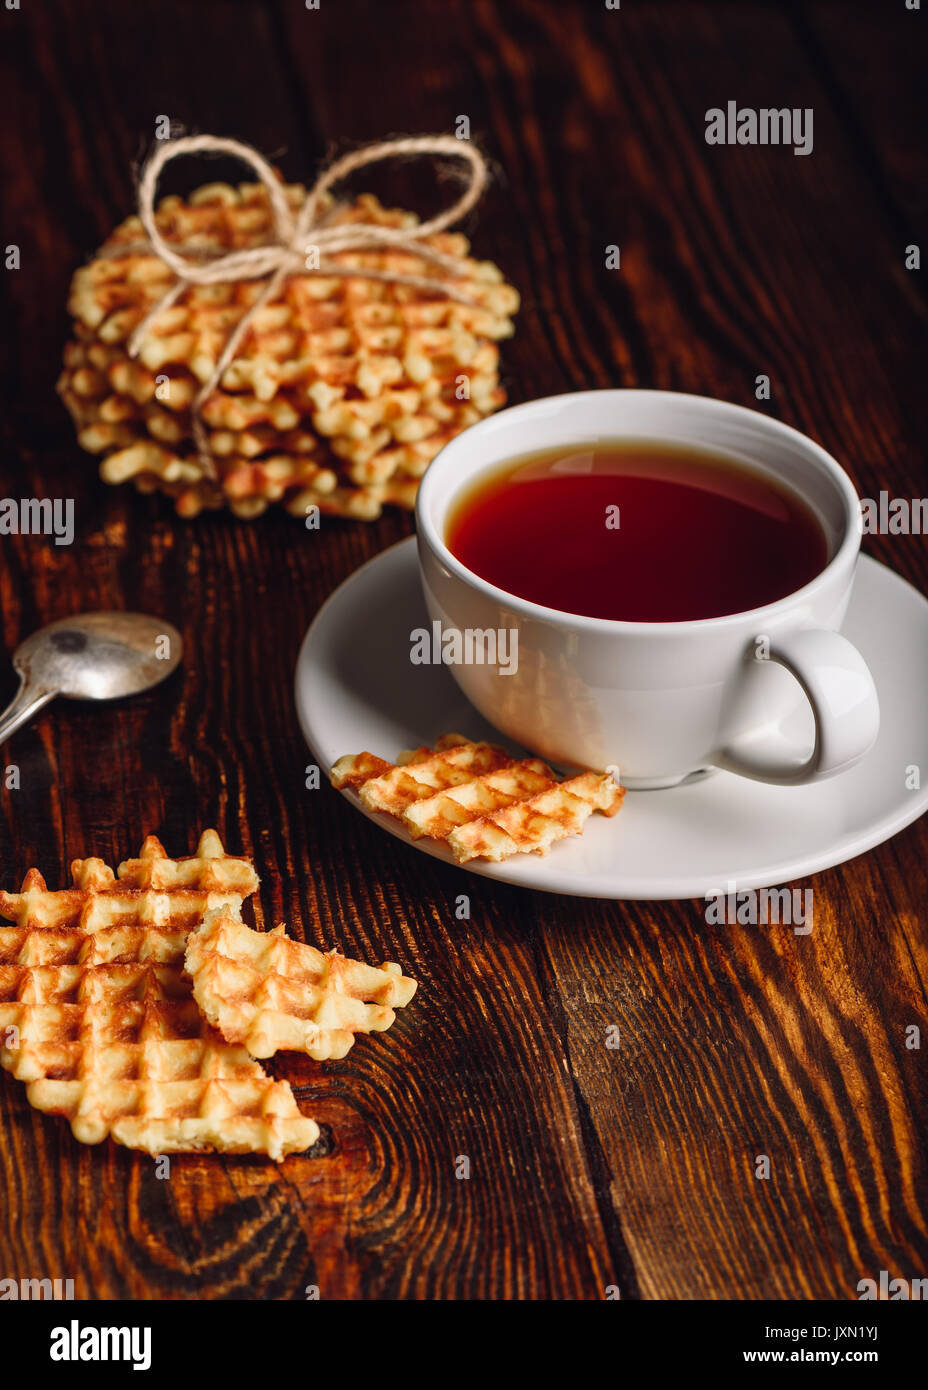 White Cup of Tea and Belgian Waffles for Dessert. Vertical Orientation. - Stock Image